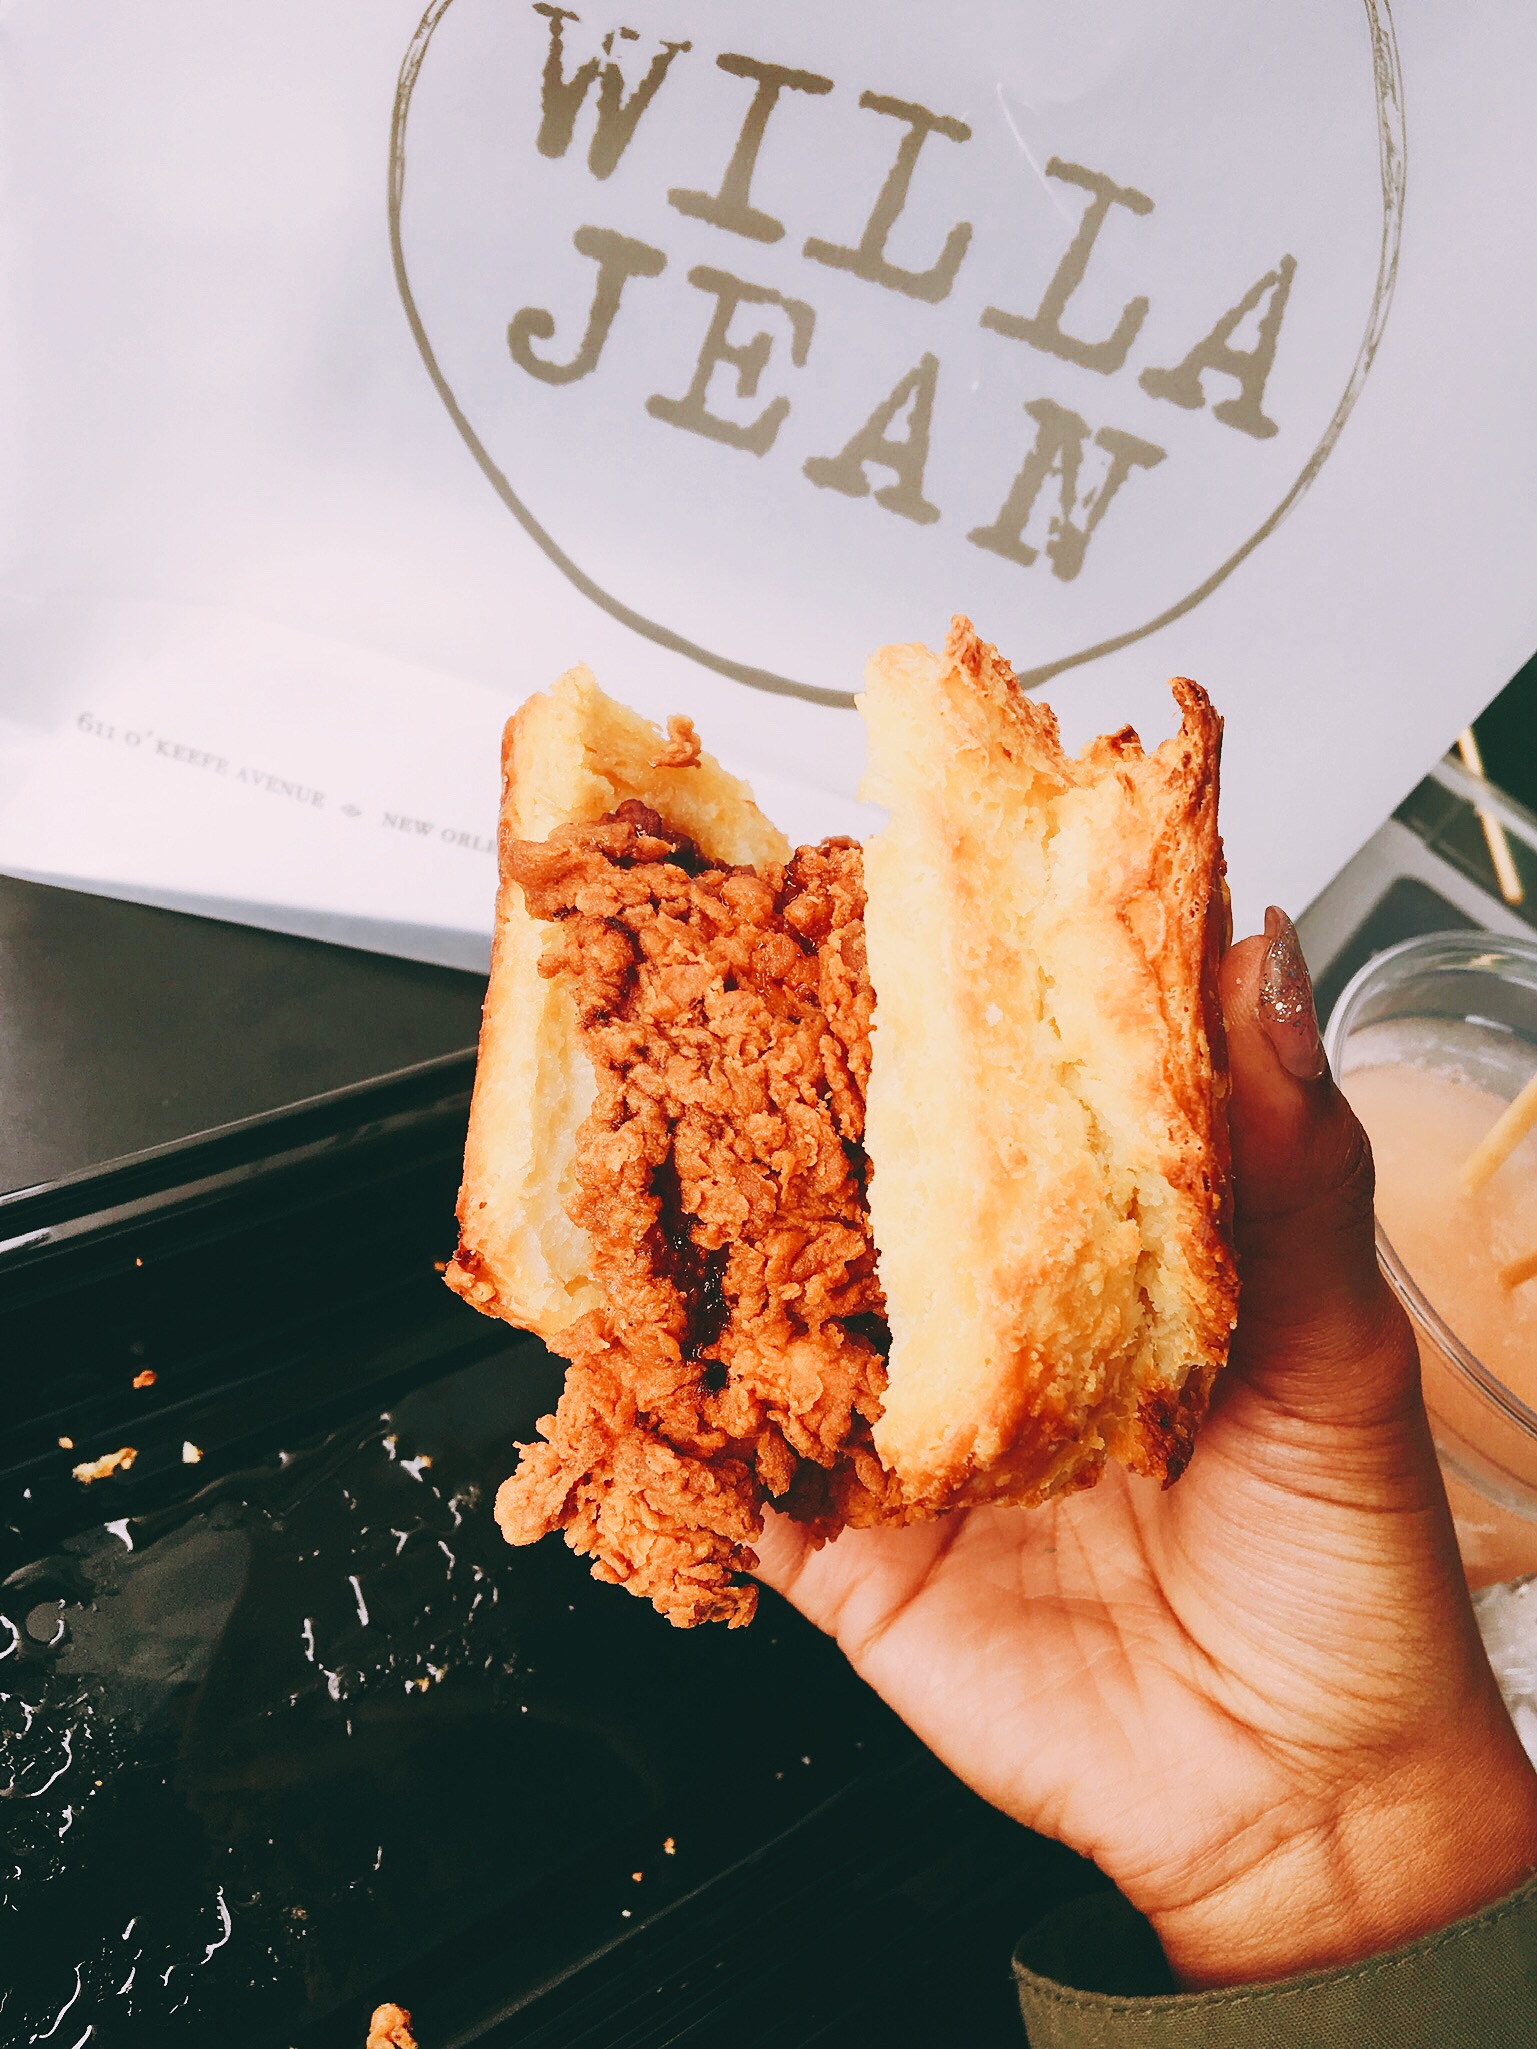 Food Find: Willa Jean in New Orleans, LA